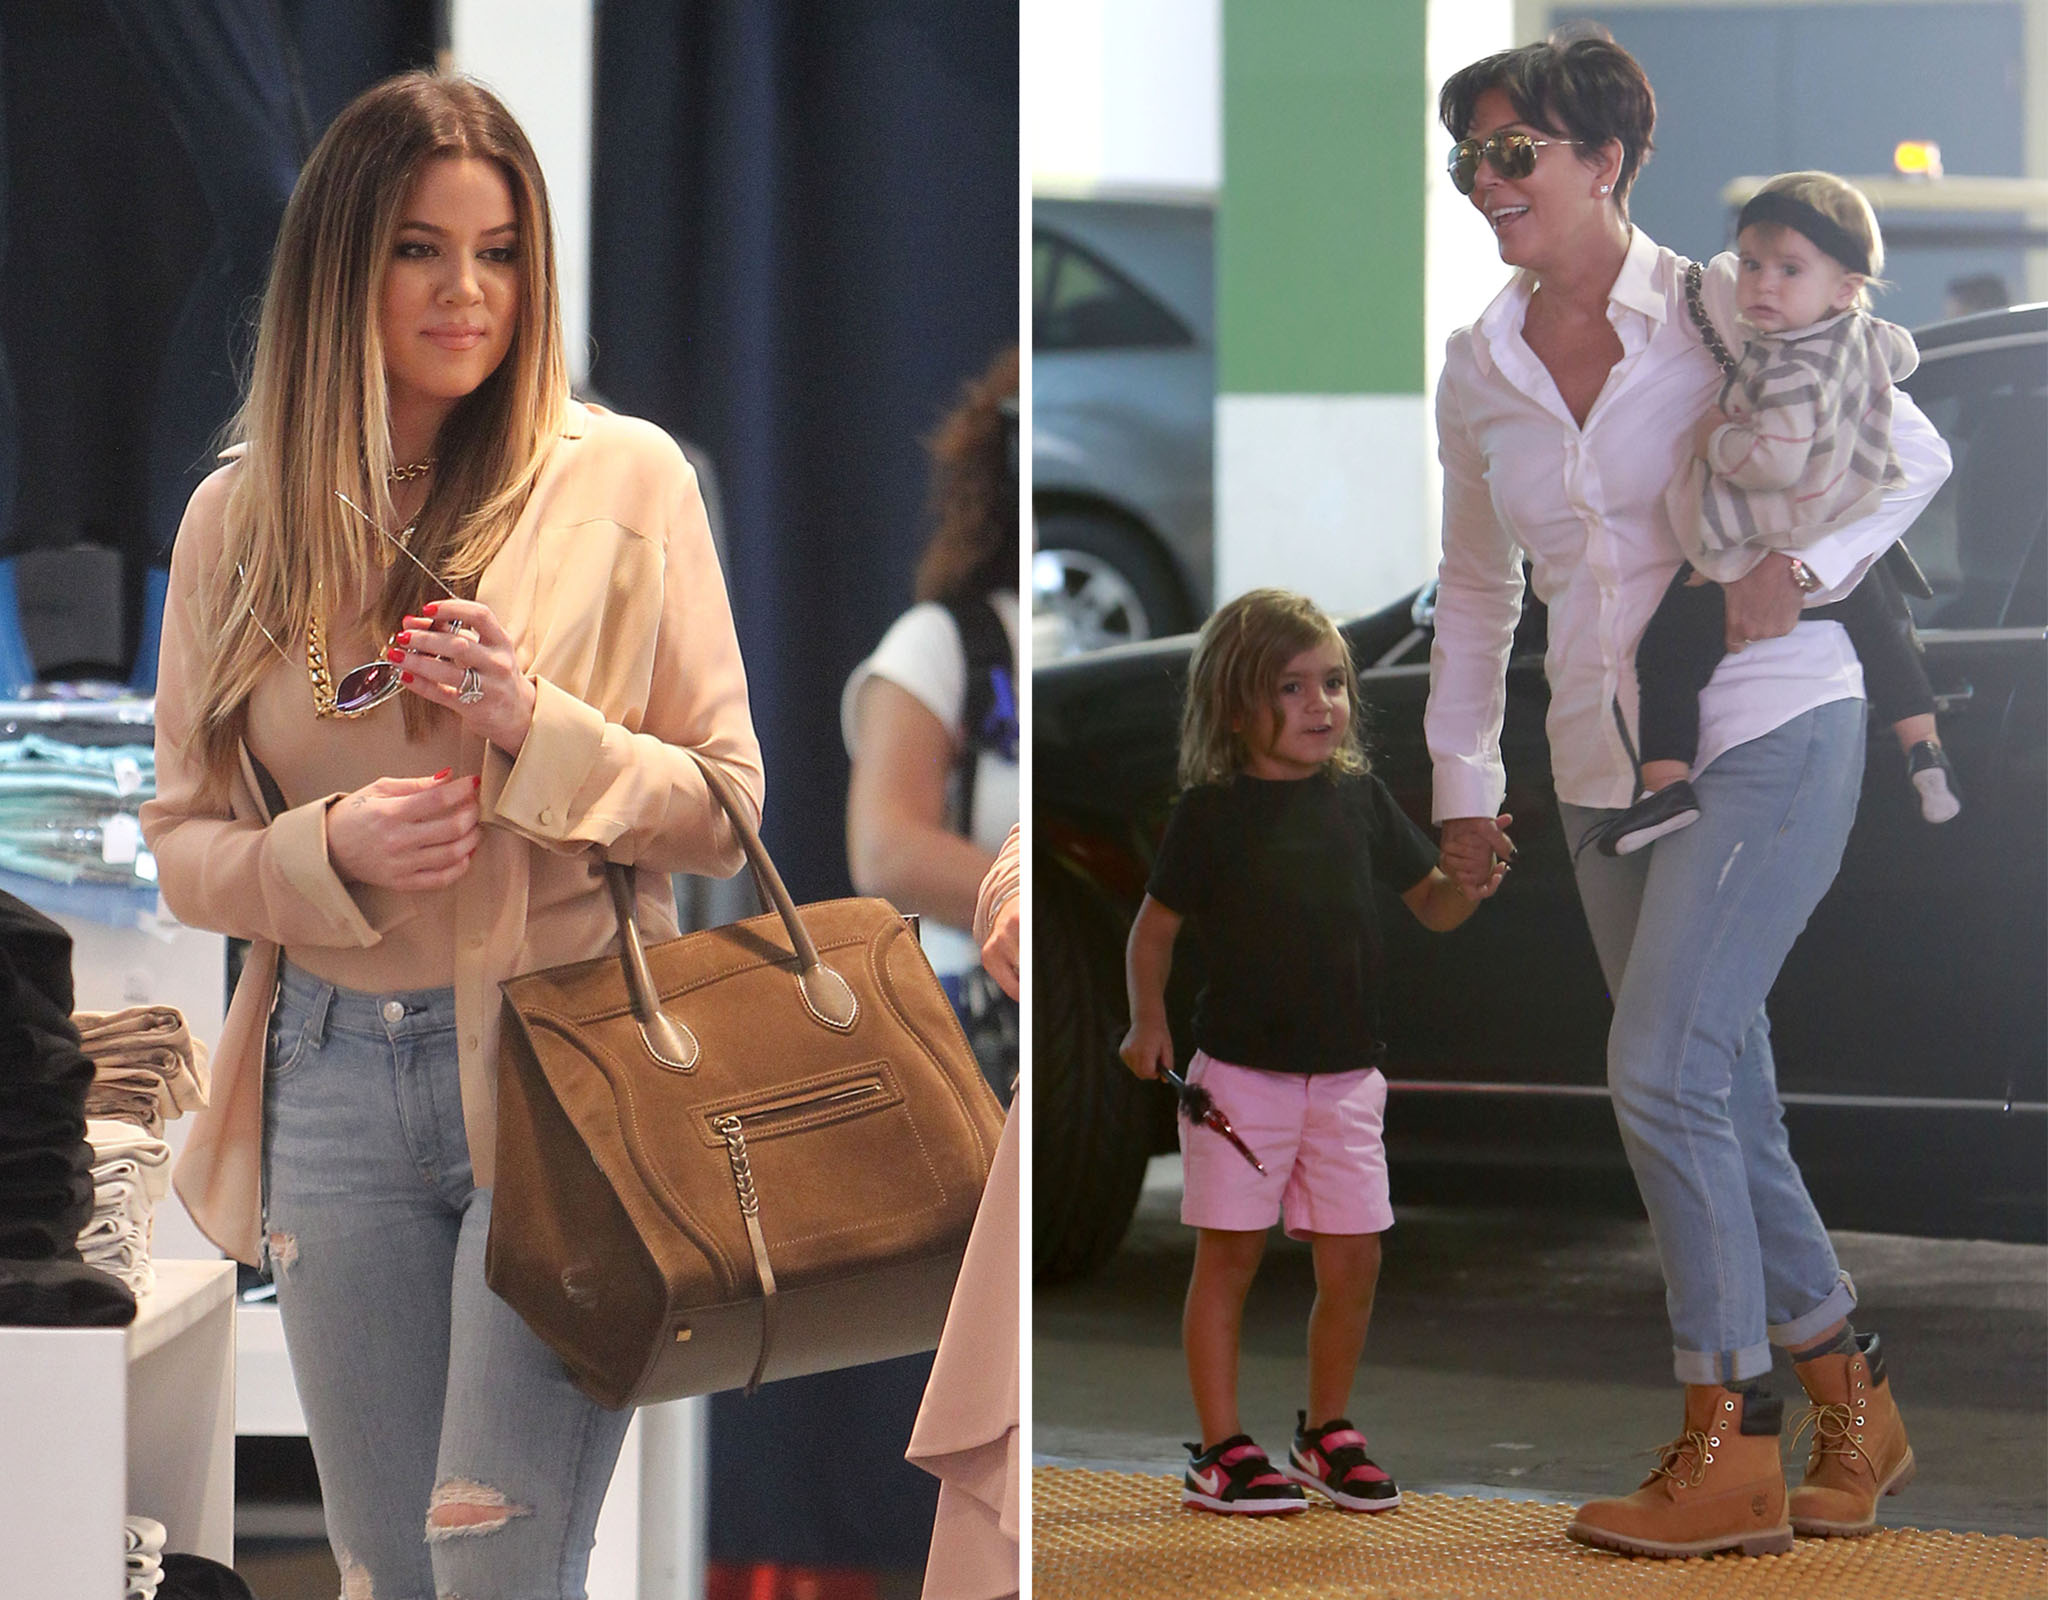 Khloé and Kris Jenner film 'Keeping Up With the Kardashians' (PacificCoastNews.com/FameFlynet)